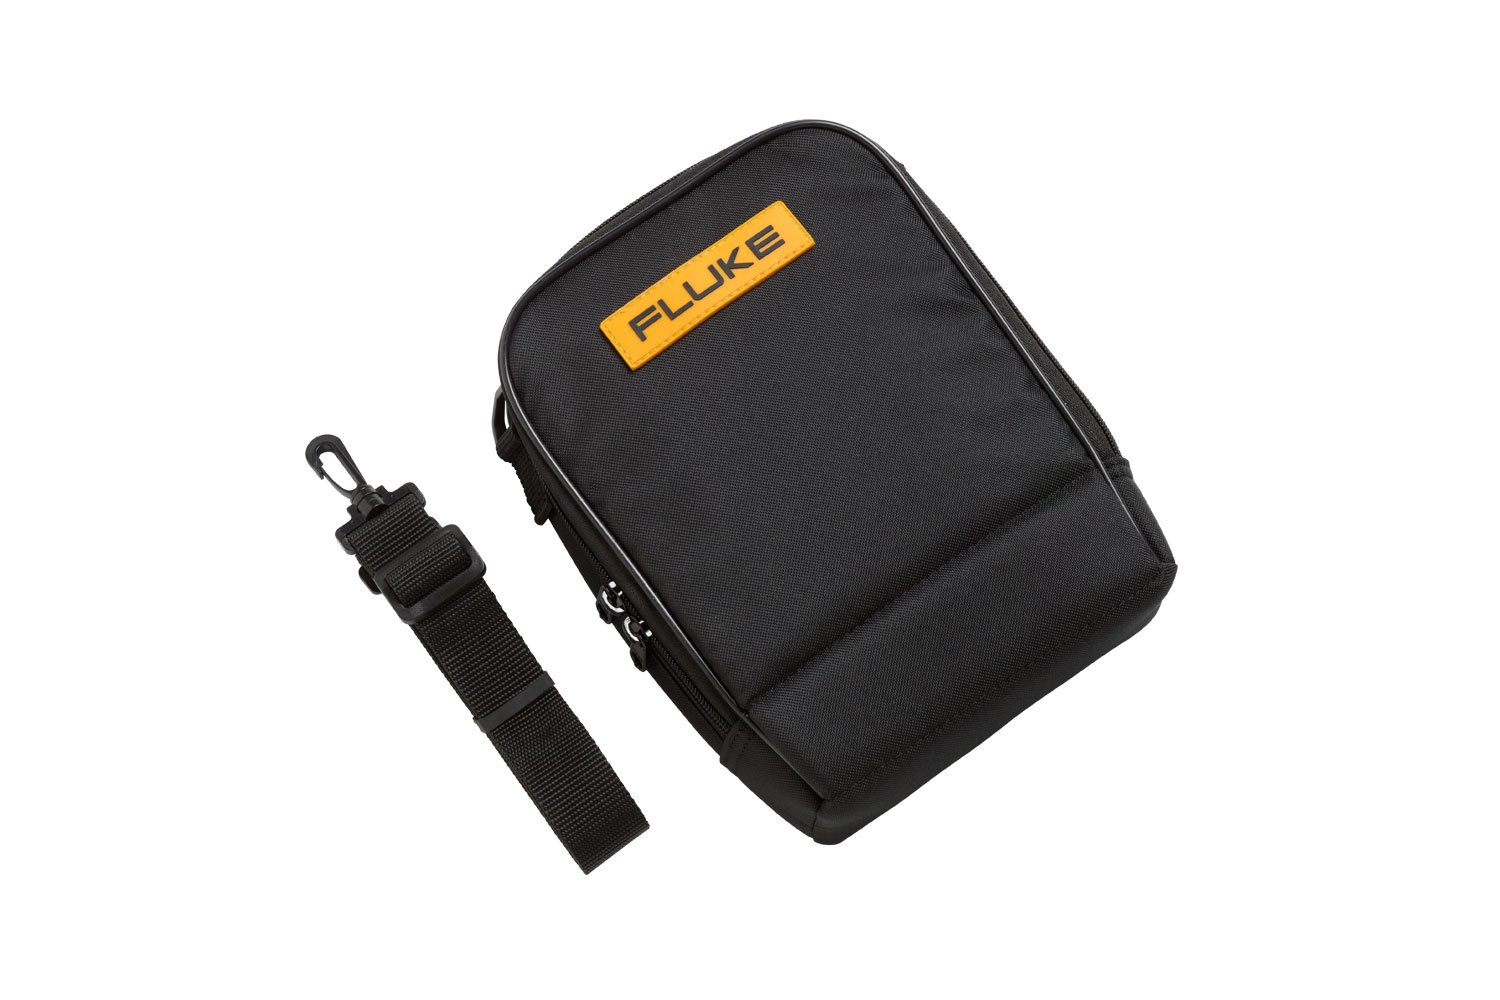 Fluke C115 Carrying Case Polyester Black/yellow